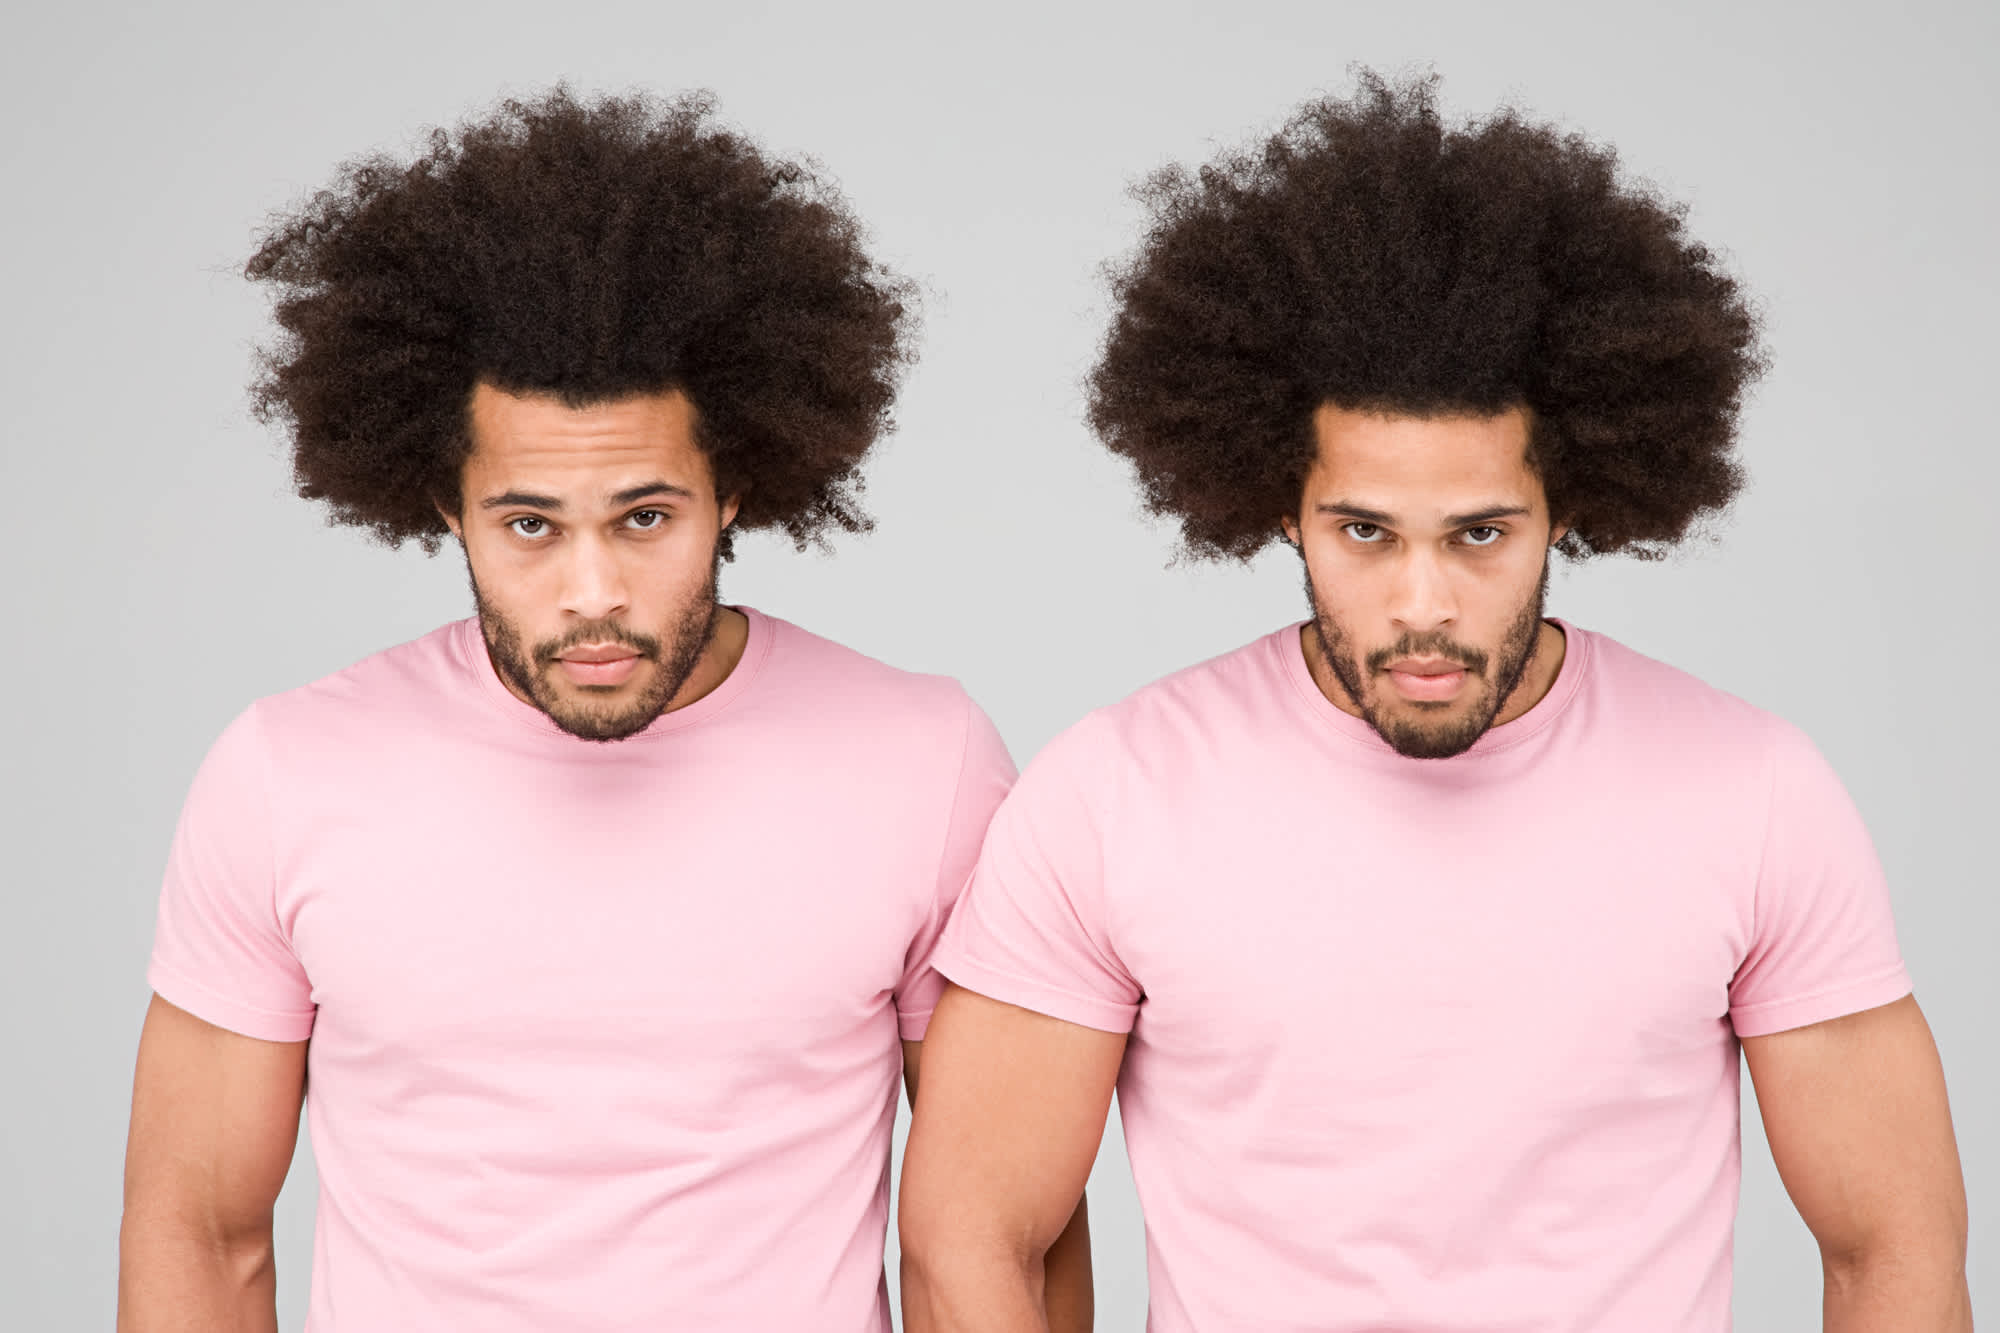 Even identical twins don't react the same way to foods — which is why most diet advice doesn't work